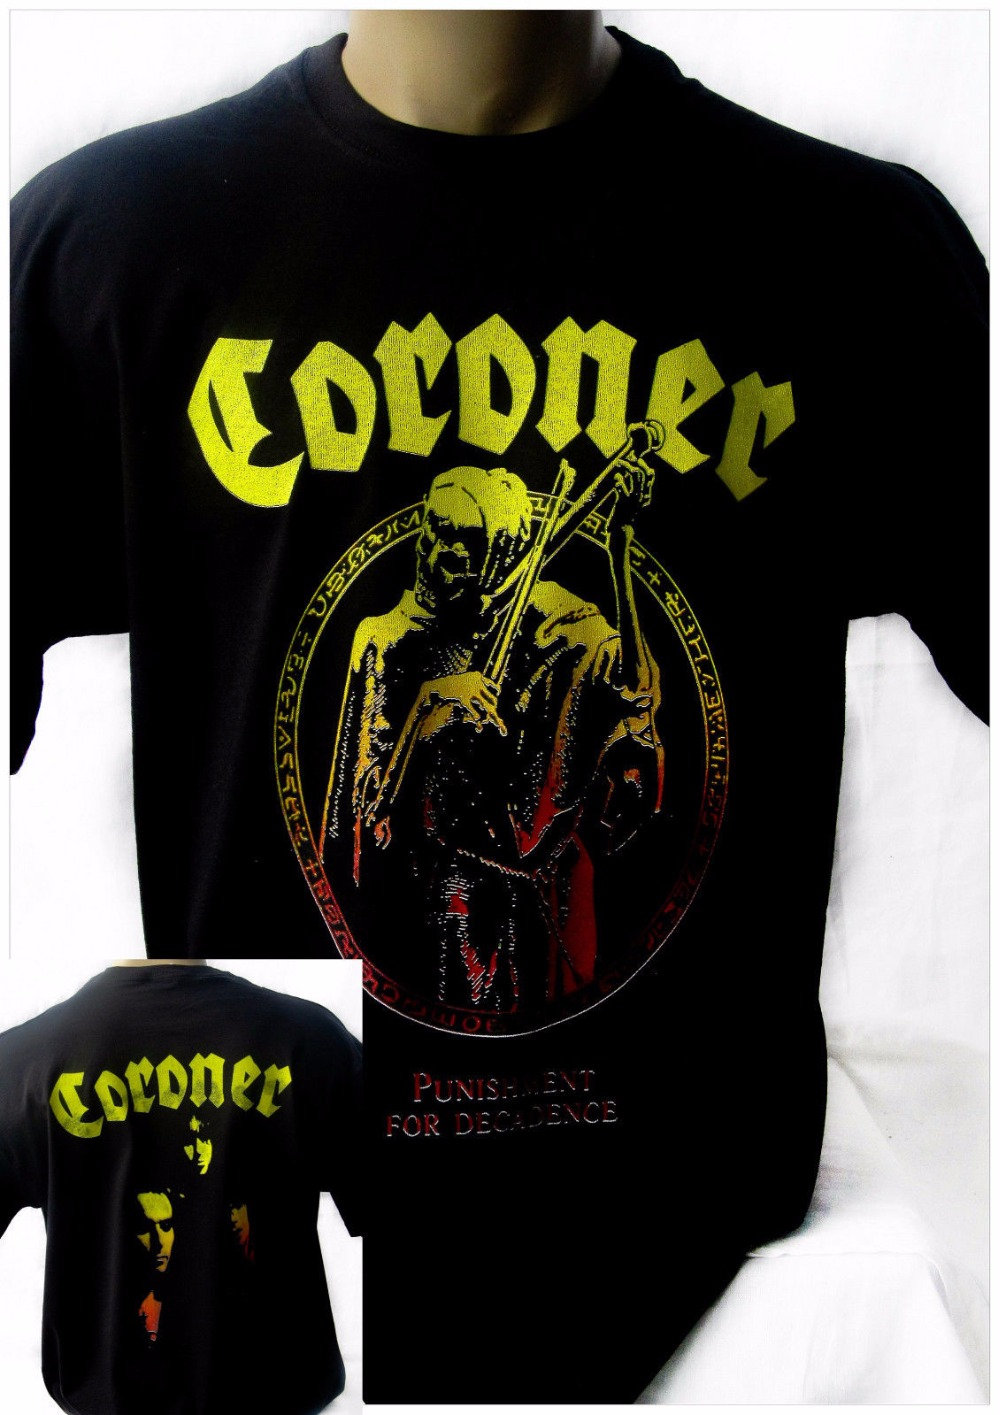 Coroner Punishment For Decadence Black New T-Shirt Rock T-Shirt Rock Band Shirt Tshirt Tops Summer Cool Funny T-Shirt